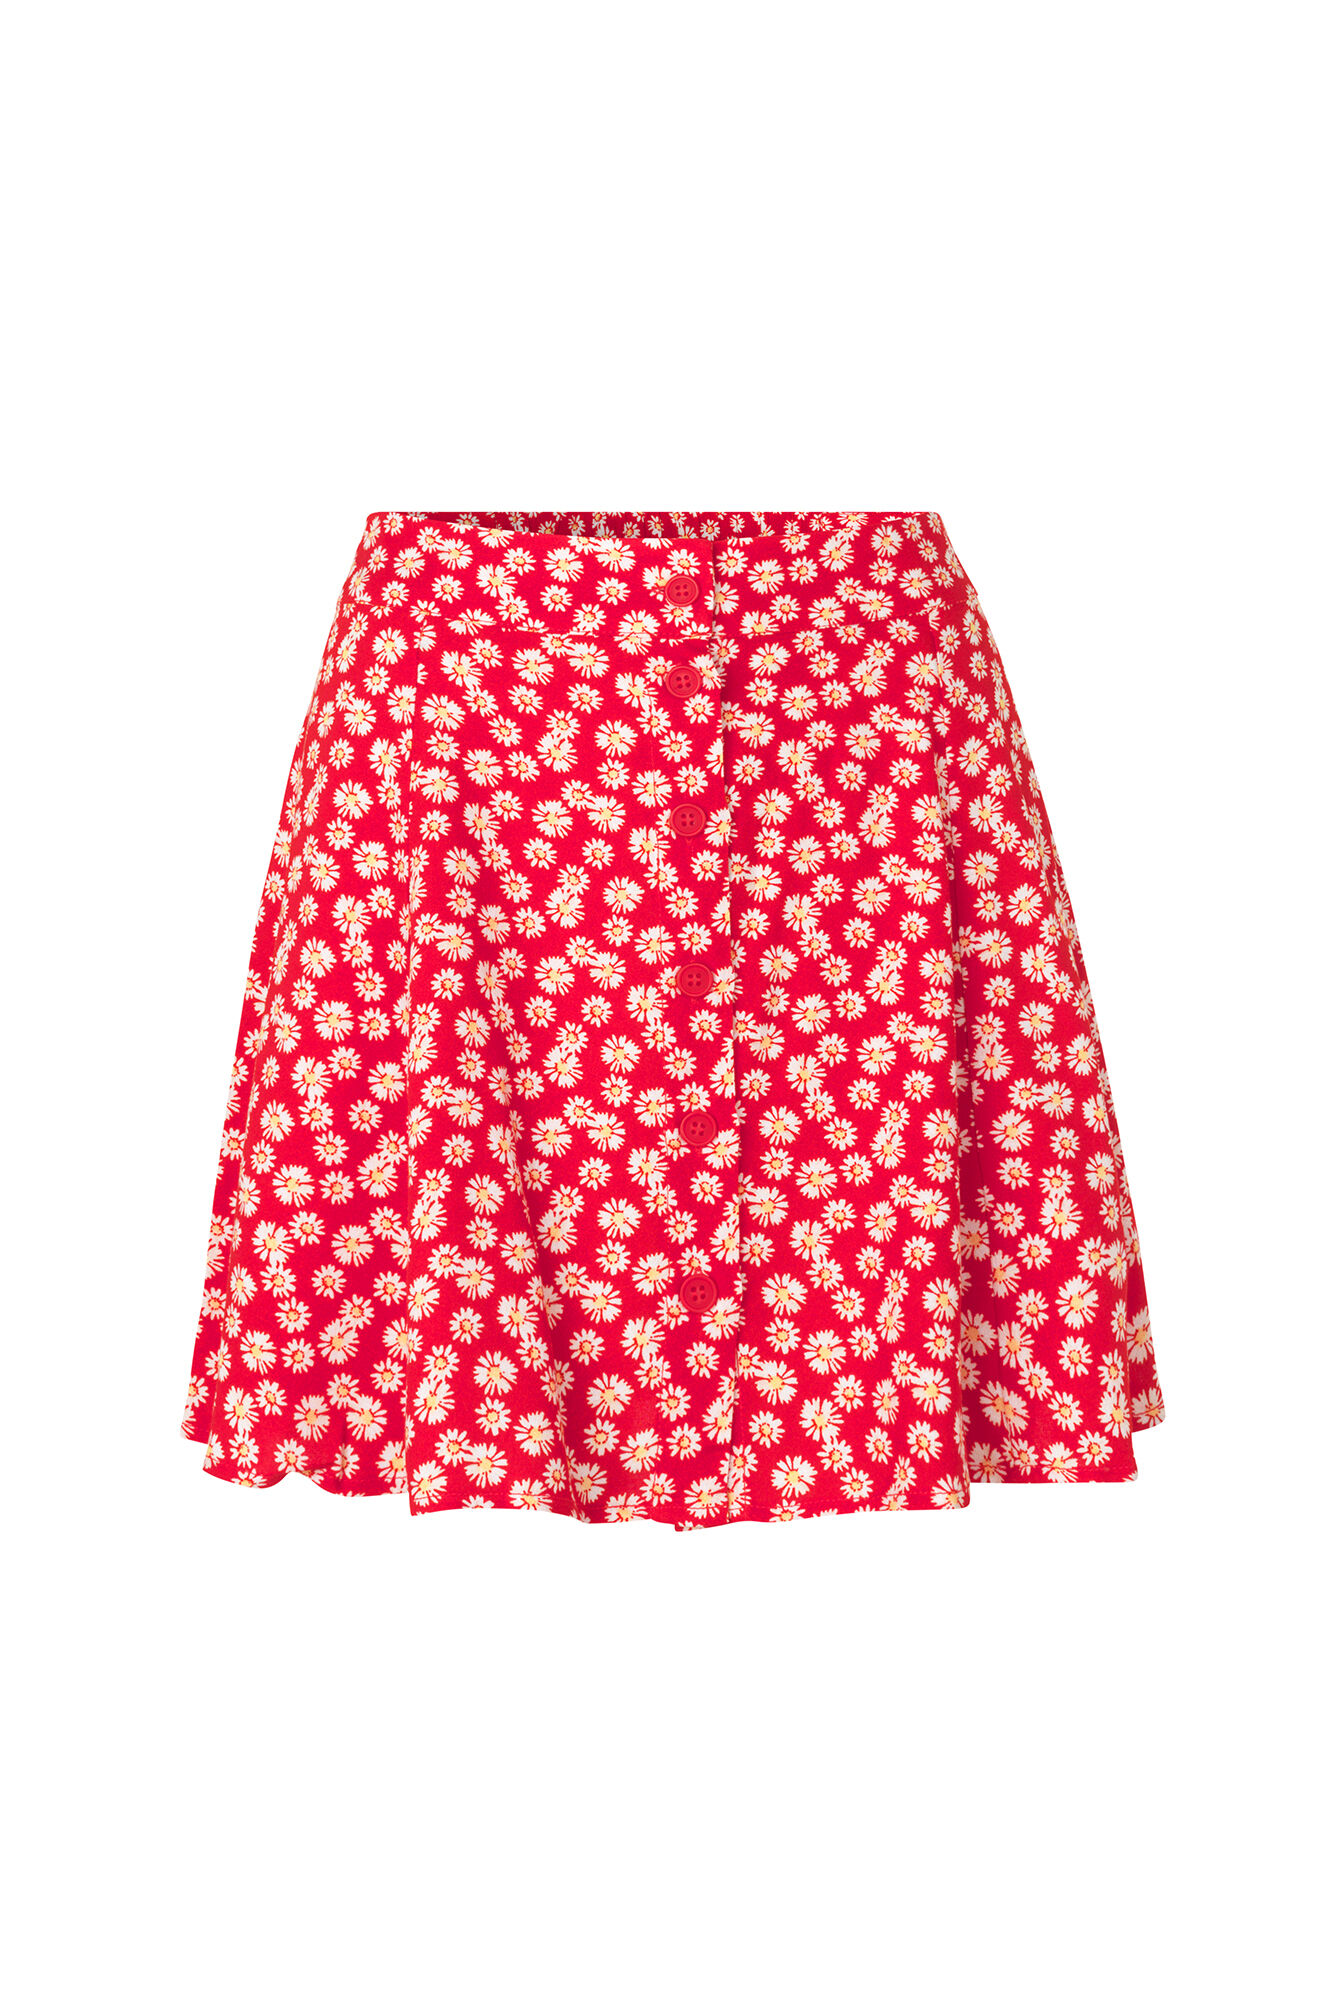 ENSPRINGS SKIRT AOP 6546, RED DAISY AOP